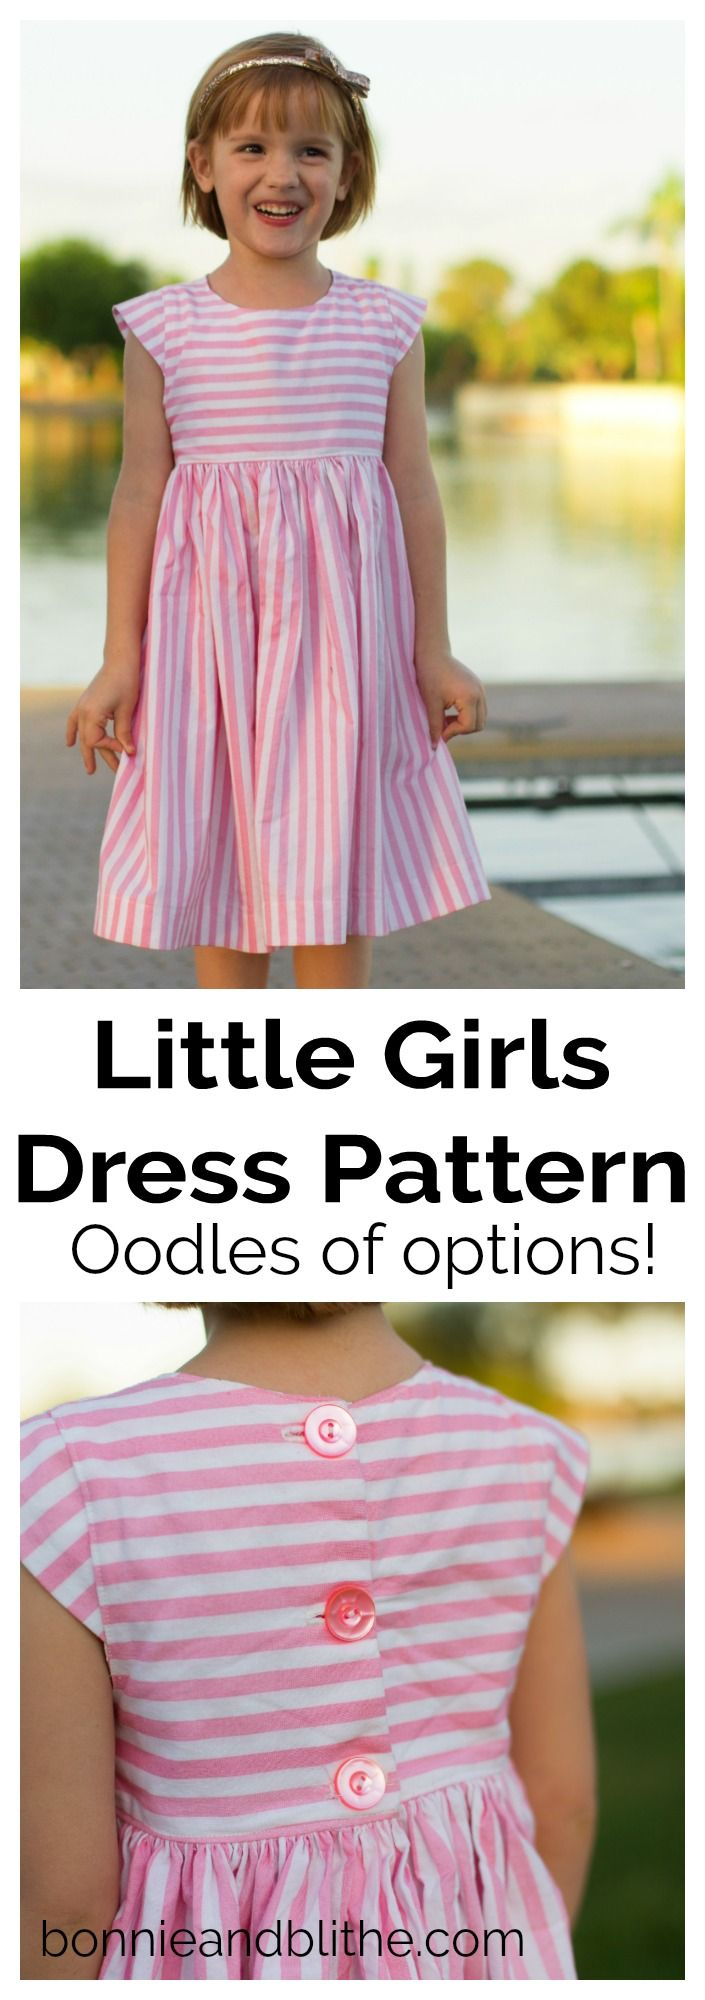 Easy sewing pattern for an infinitely customizable little girls dress! Whether you have a newborn, toddler or grade school little darling, you can whip up any number of different styles of dress from this one single pattern.  Gathered skirt, sheath style, ruffle sleeve - you name it!  This simple sewing project will have your little girl(s) looking adorable in her handmade outfit in no time!